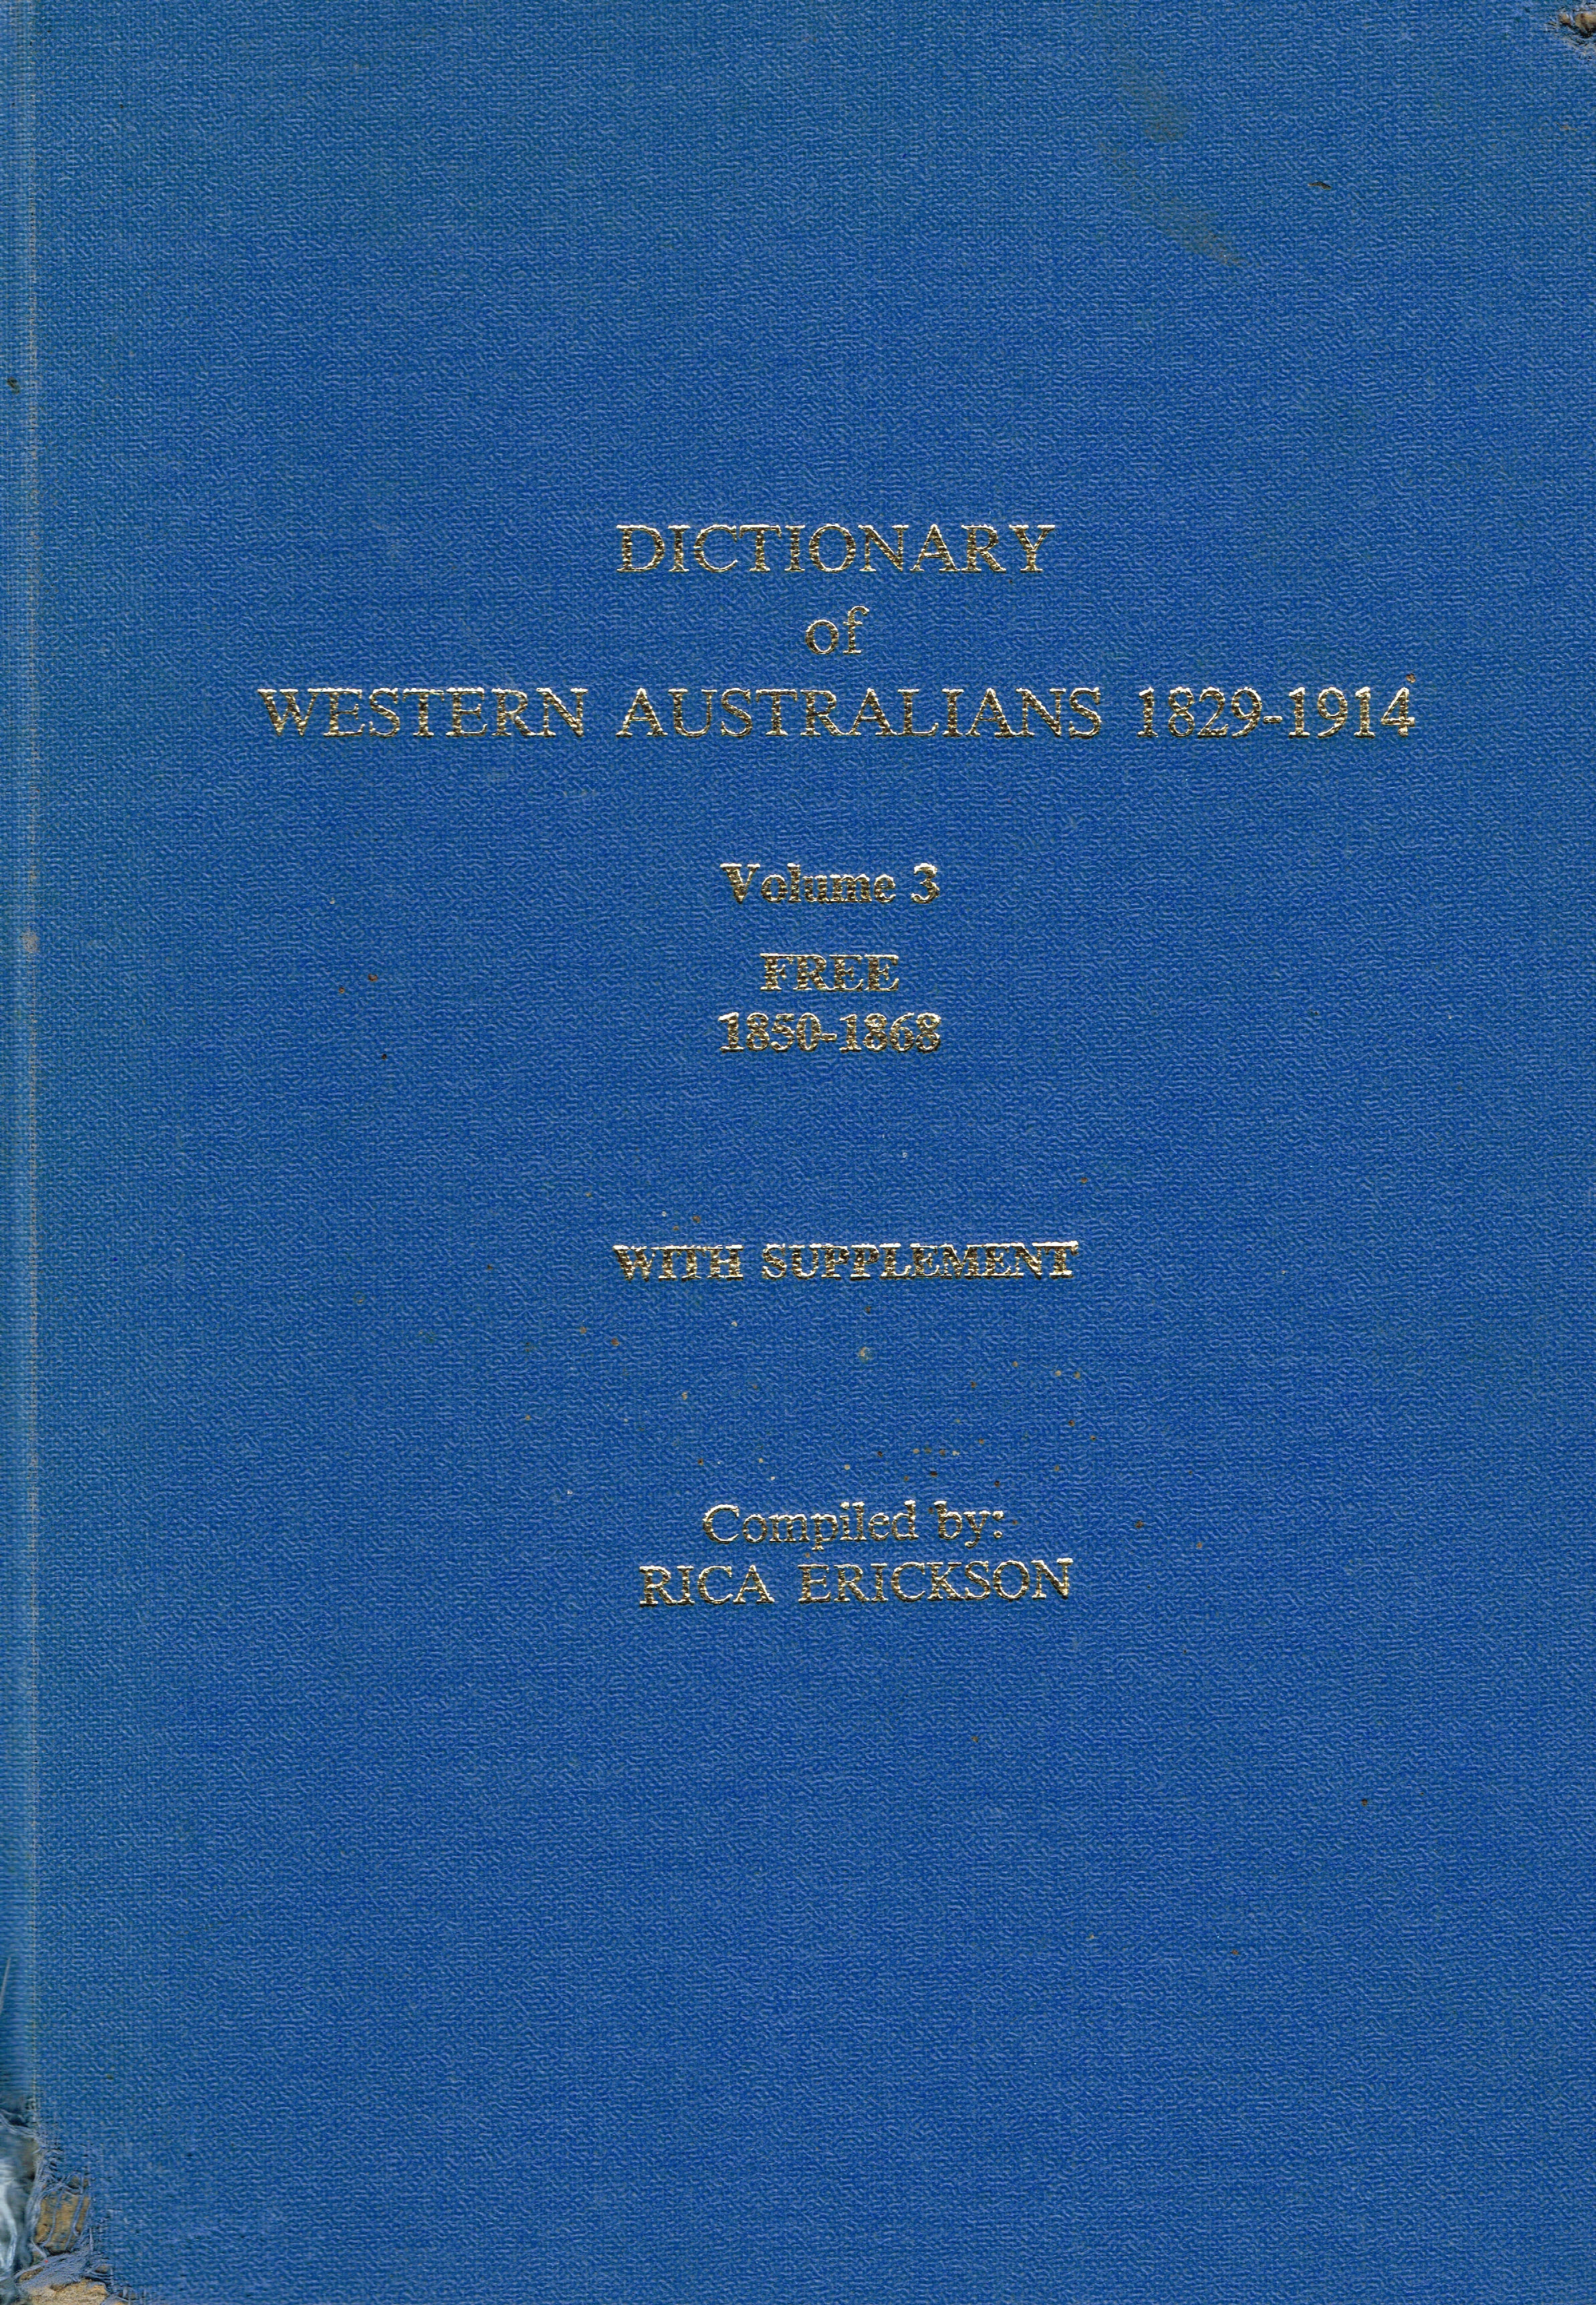 Dictionary of Western Australians 1829-1914 : Vol 3 free 1850-1868 with supplement   Complied by Rica Erickson